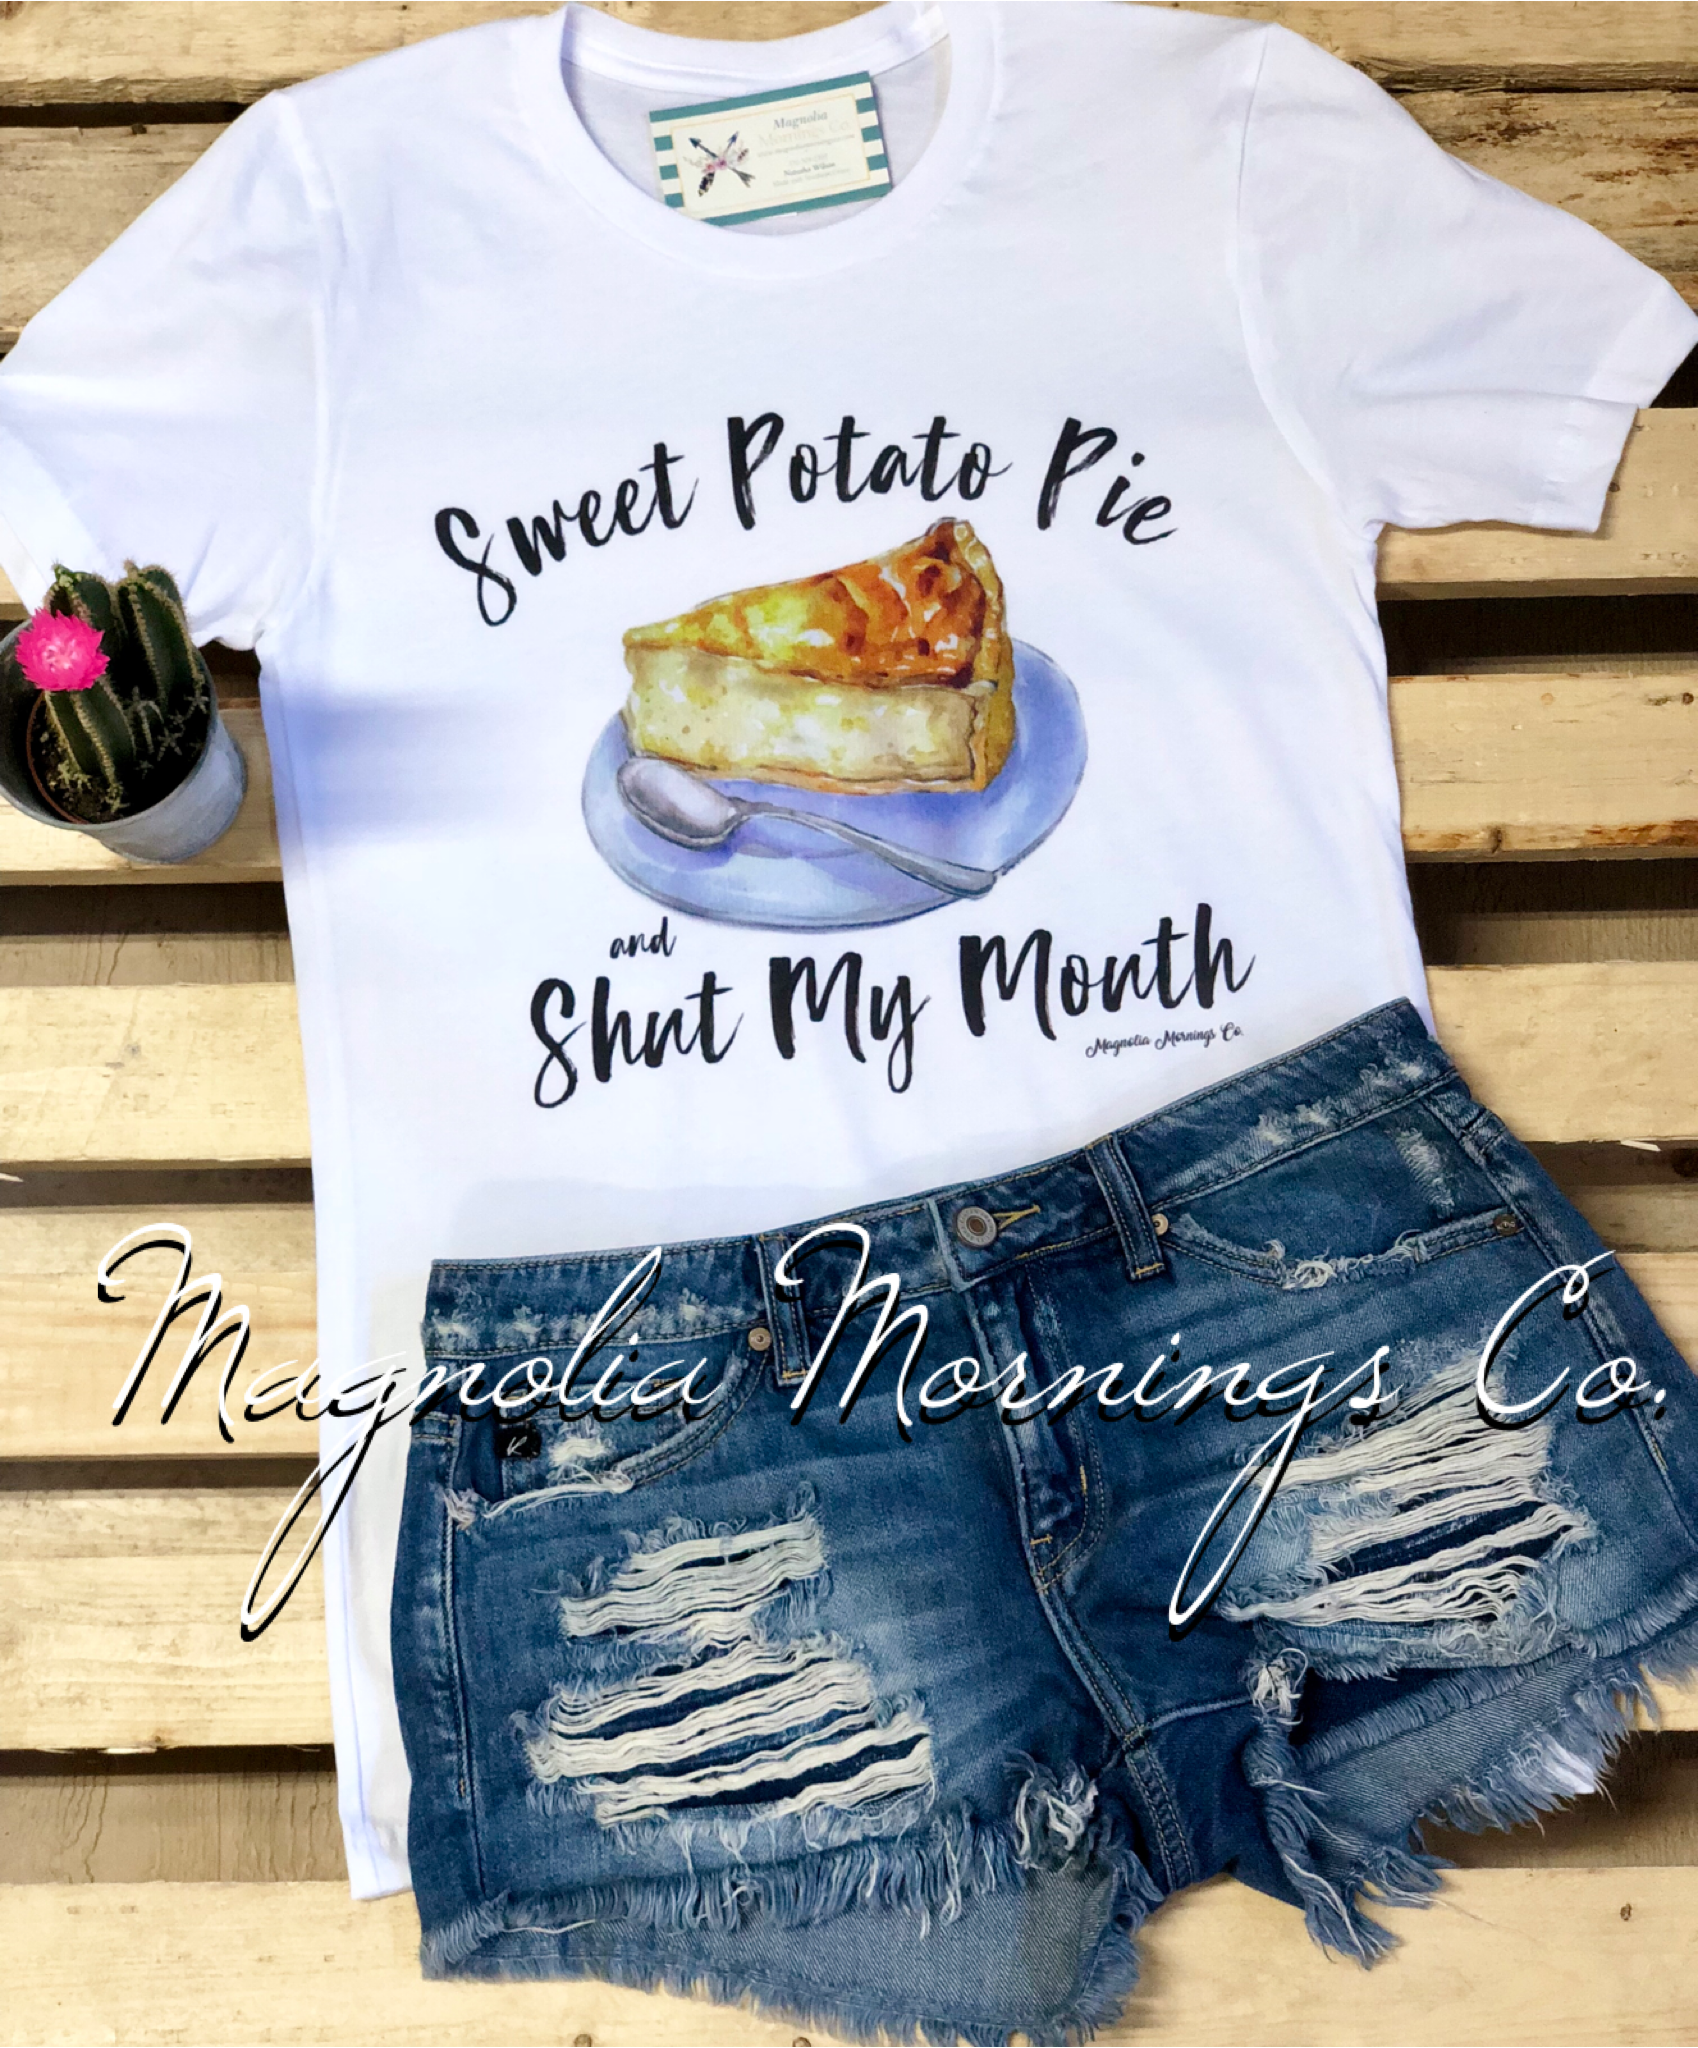 Sweet Potato Pie & Shut My Mouth